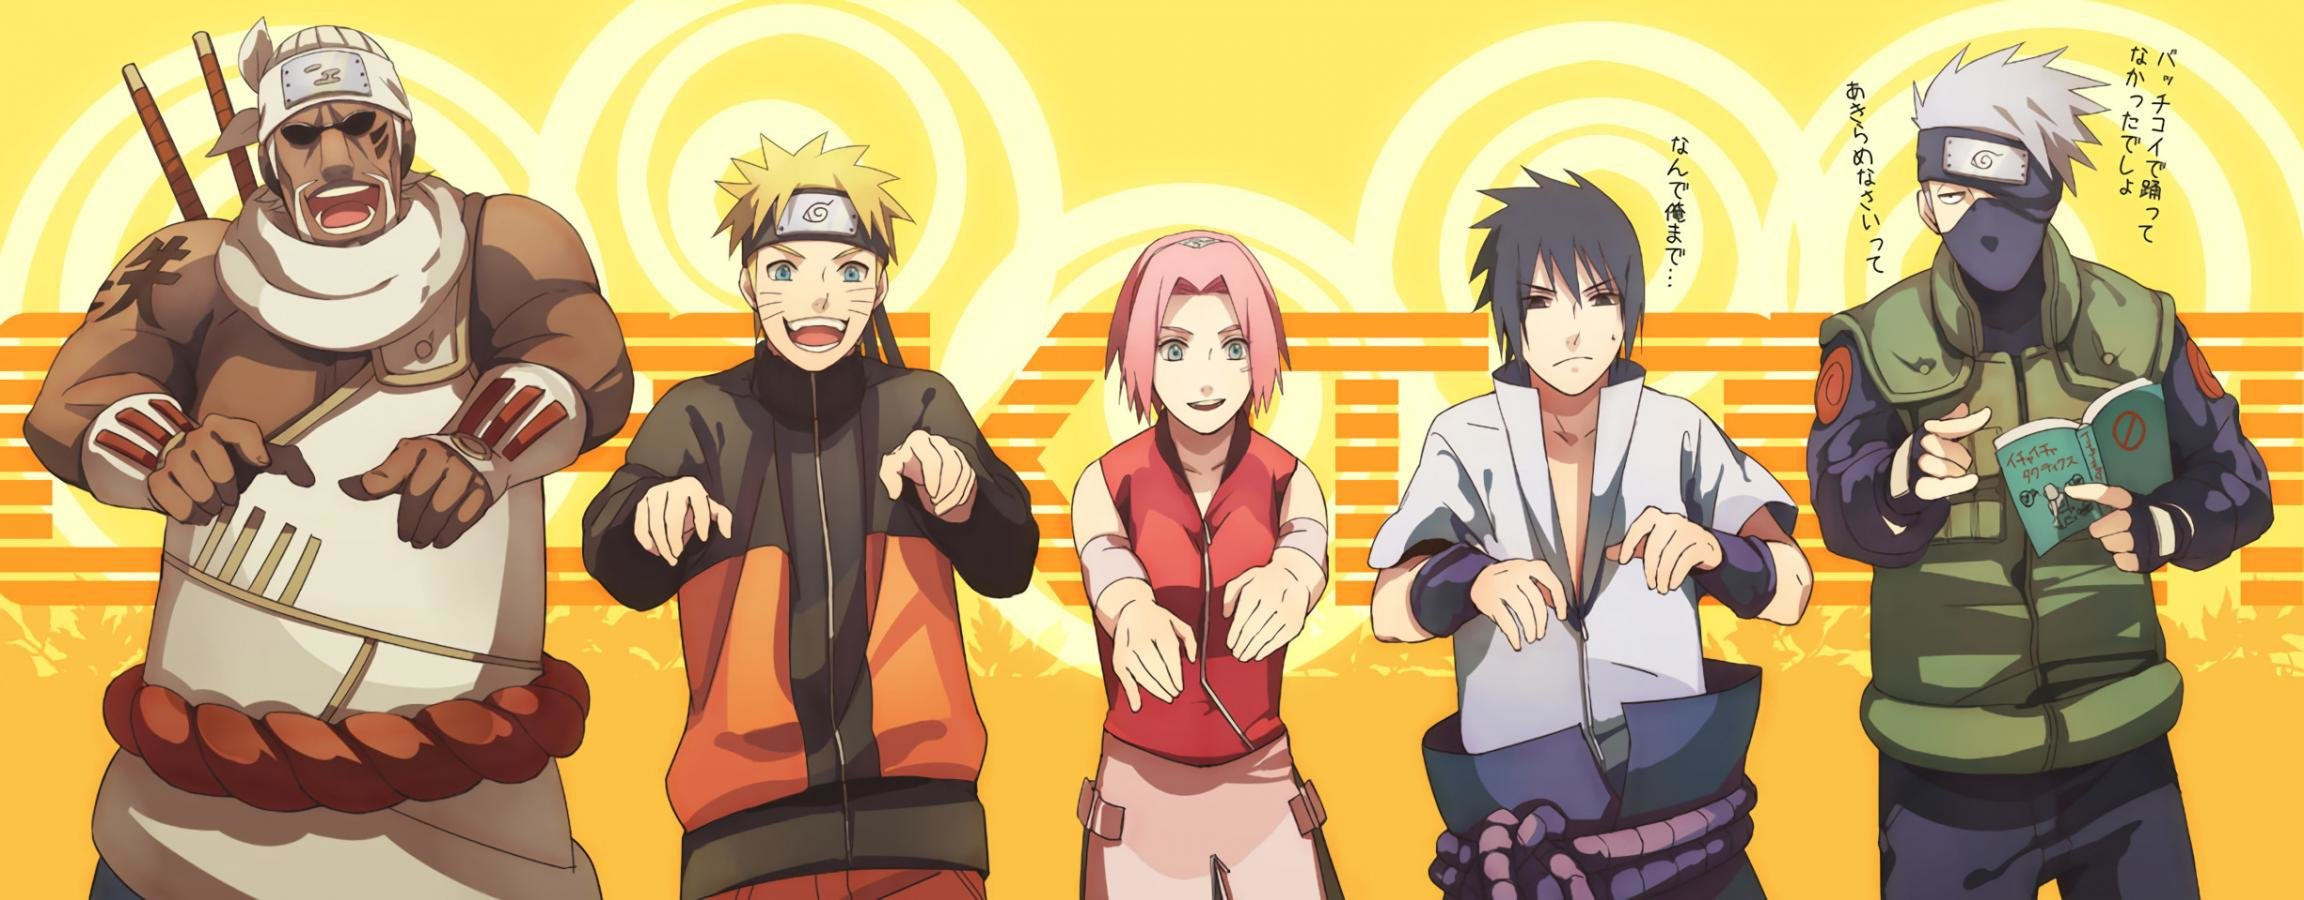 Most Inspiring Wallpaper Naruto Dual Screen - naruto-background-dual-monitor-2304x900-395090  HD_611537.jpg